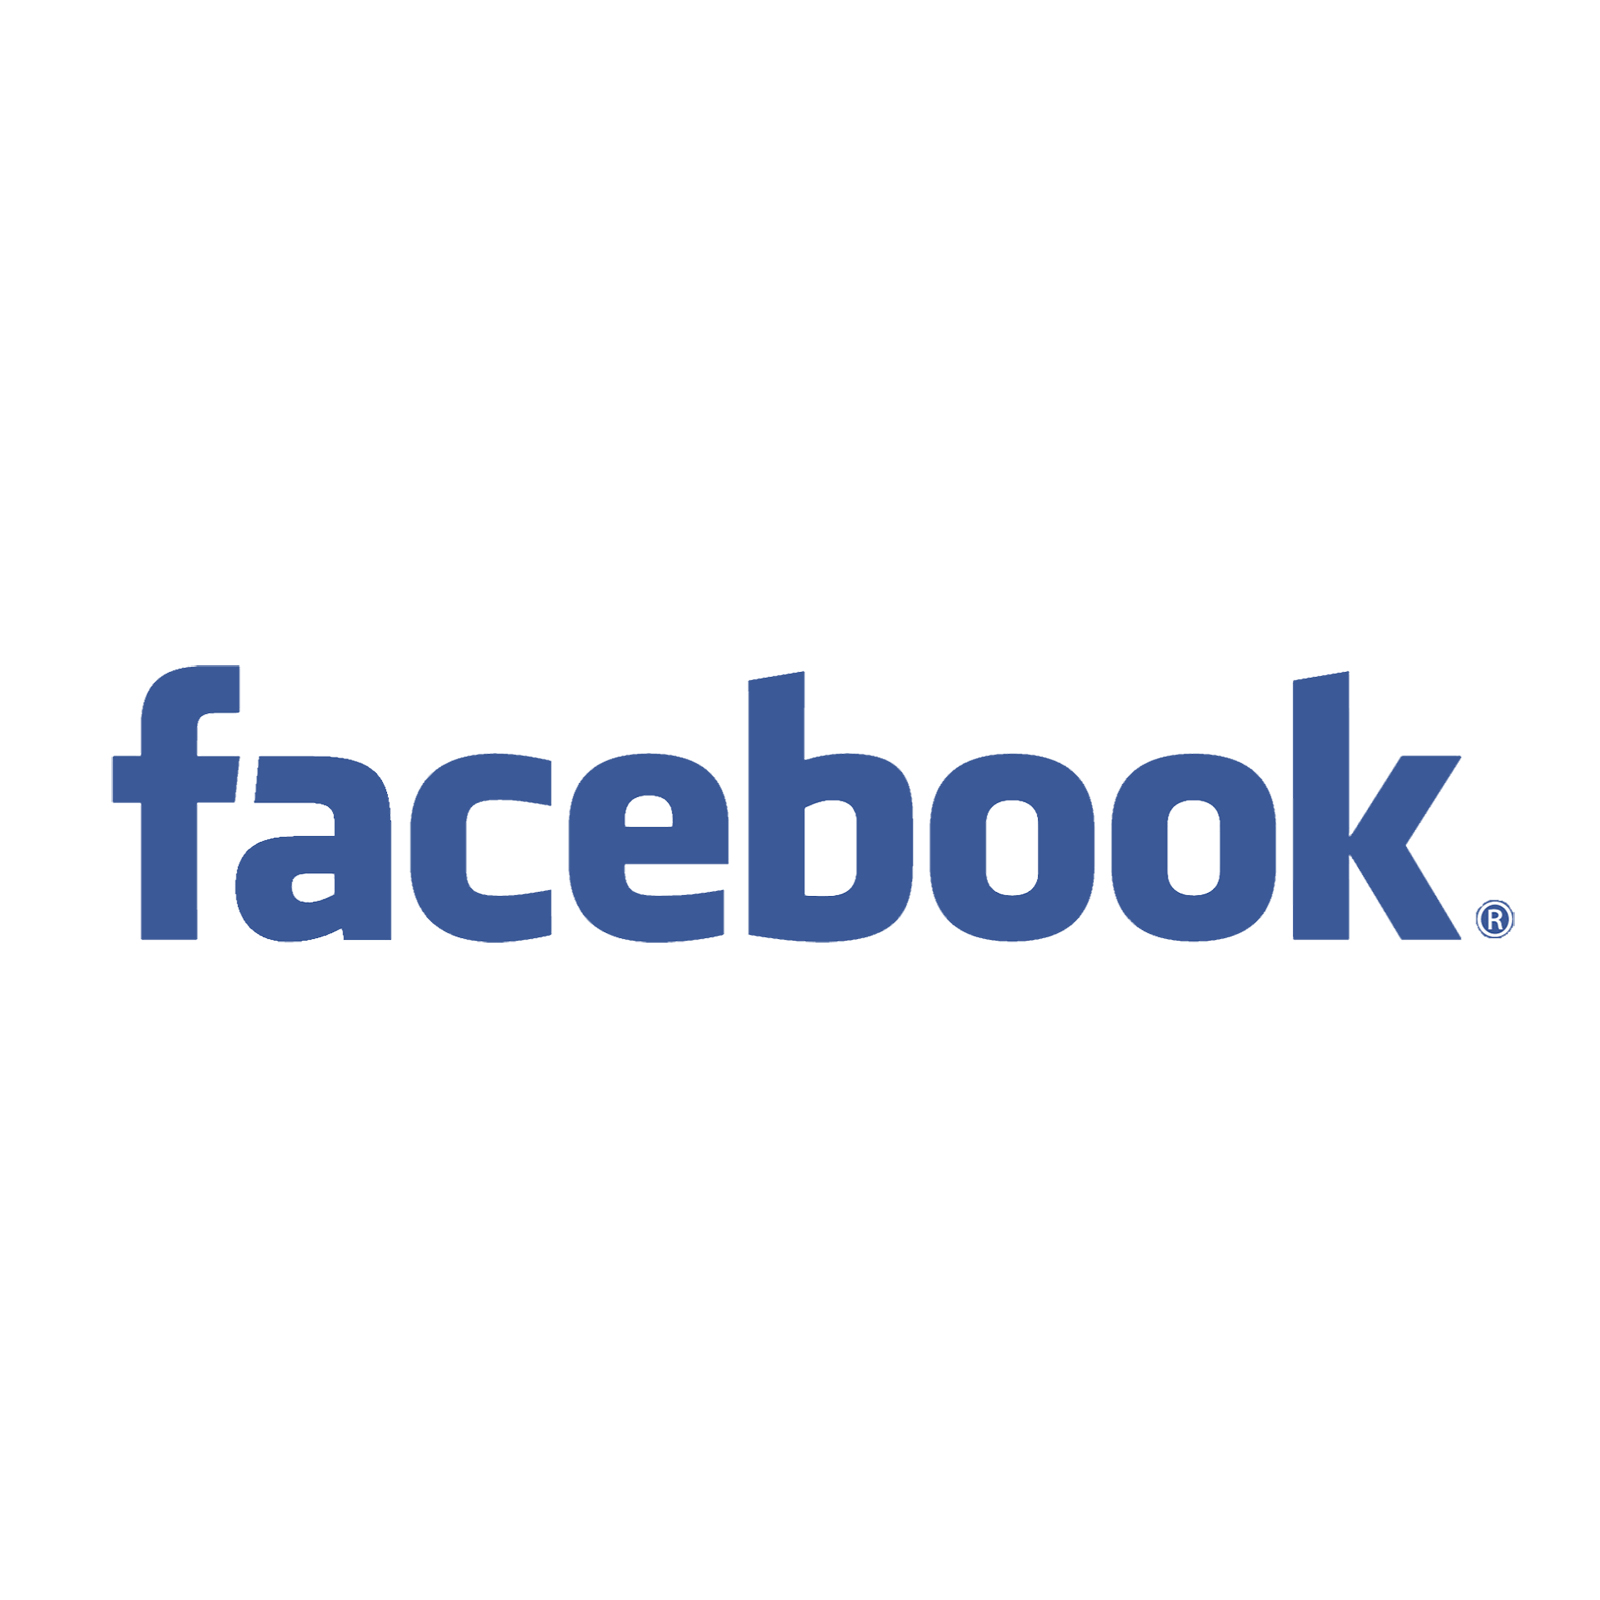 facebook-logo-png-1722 copy.png